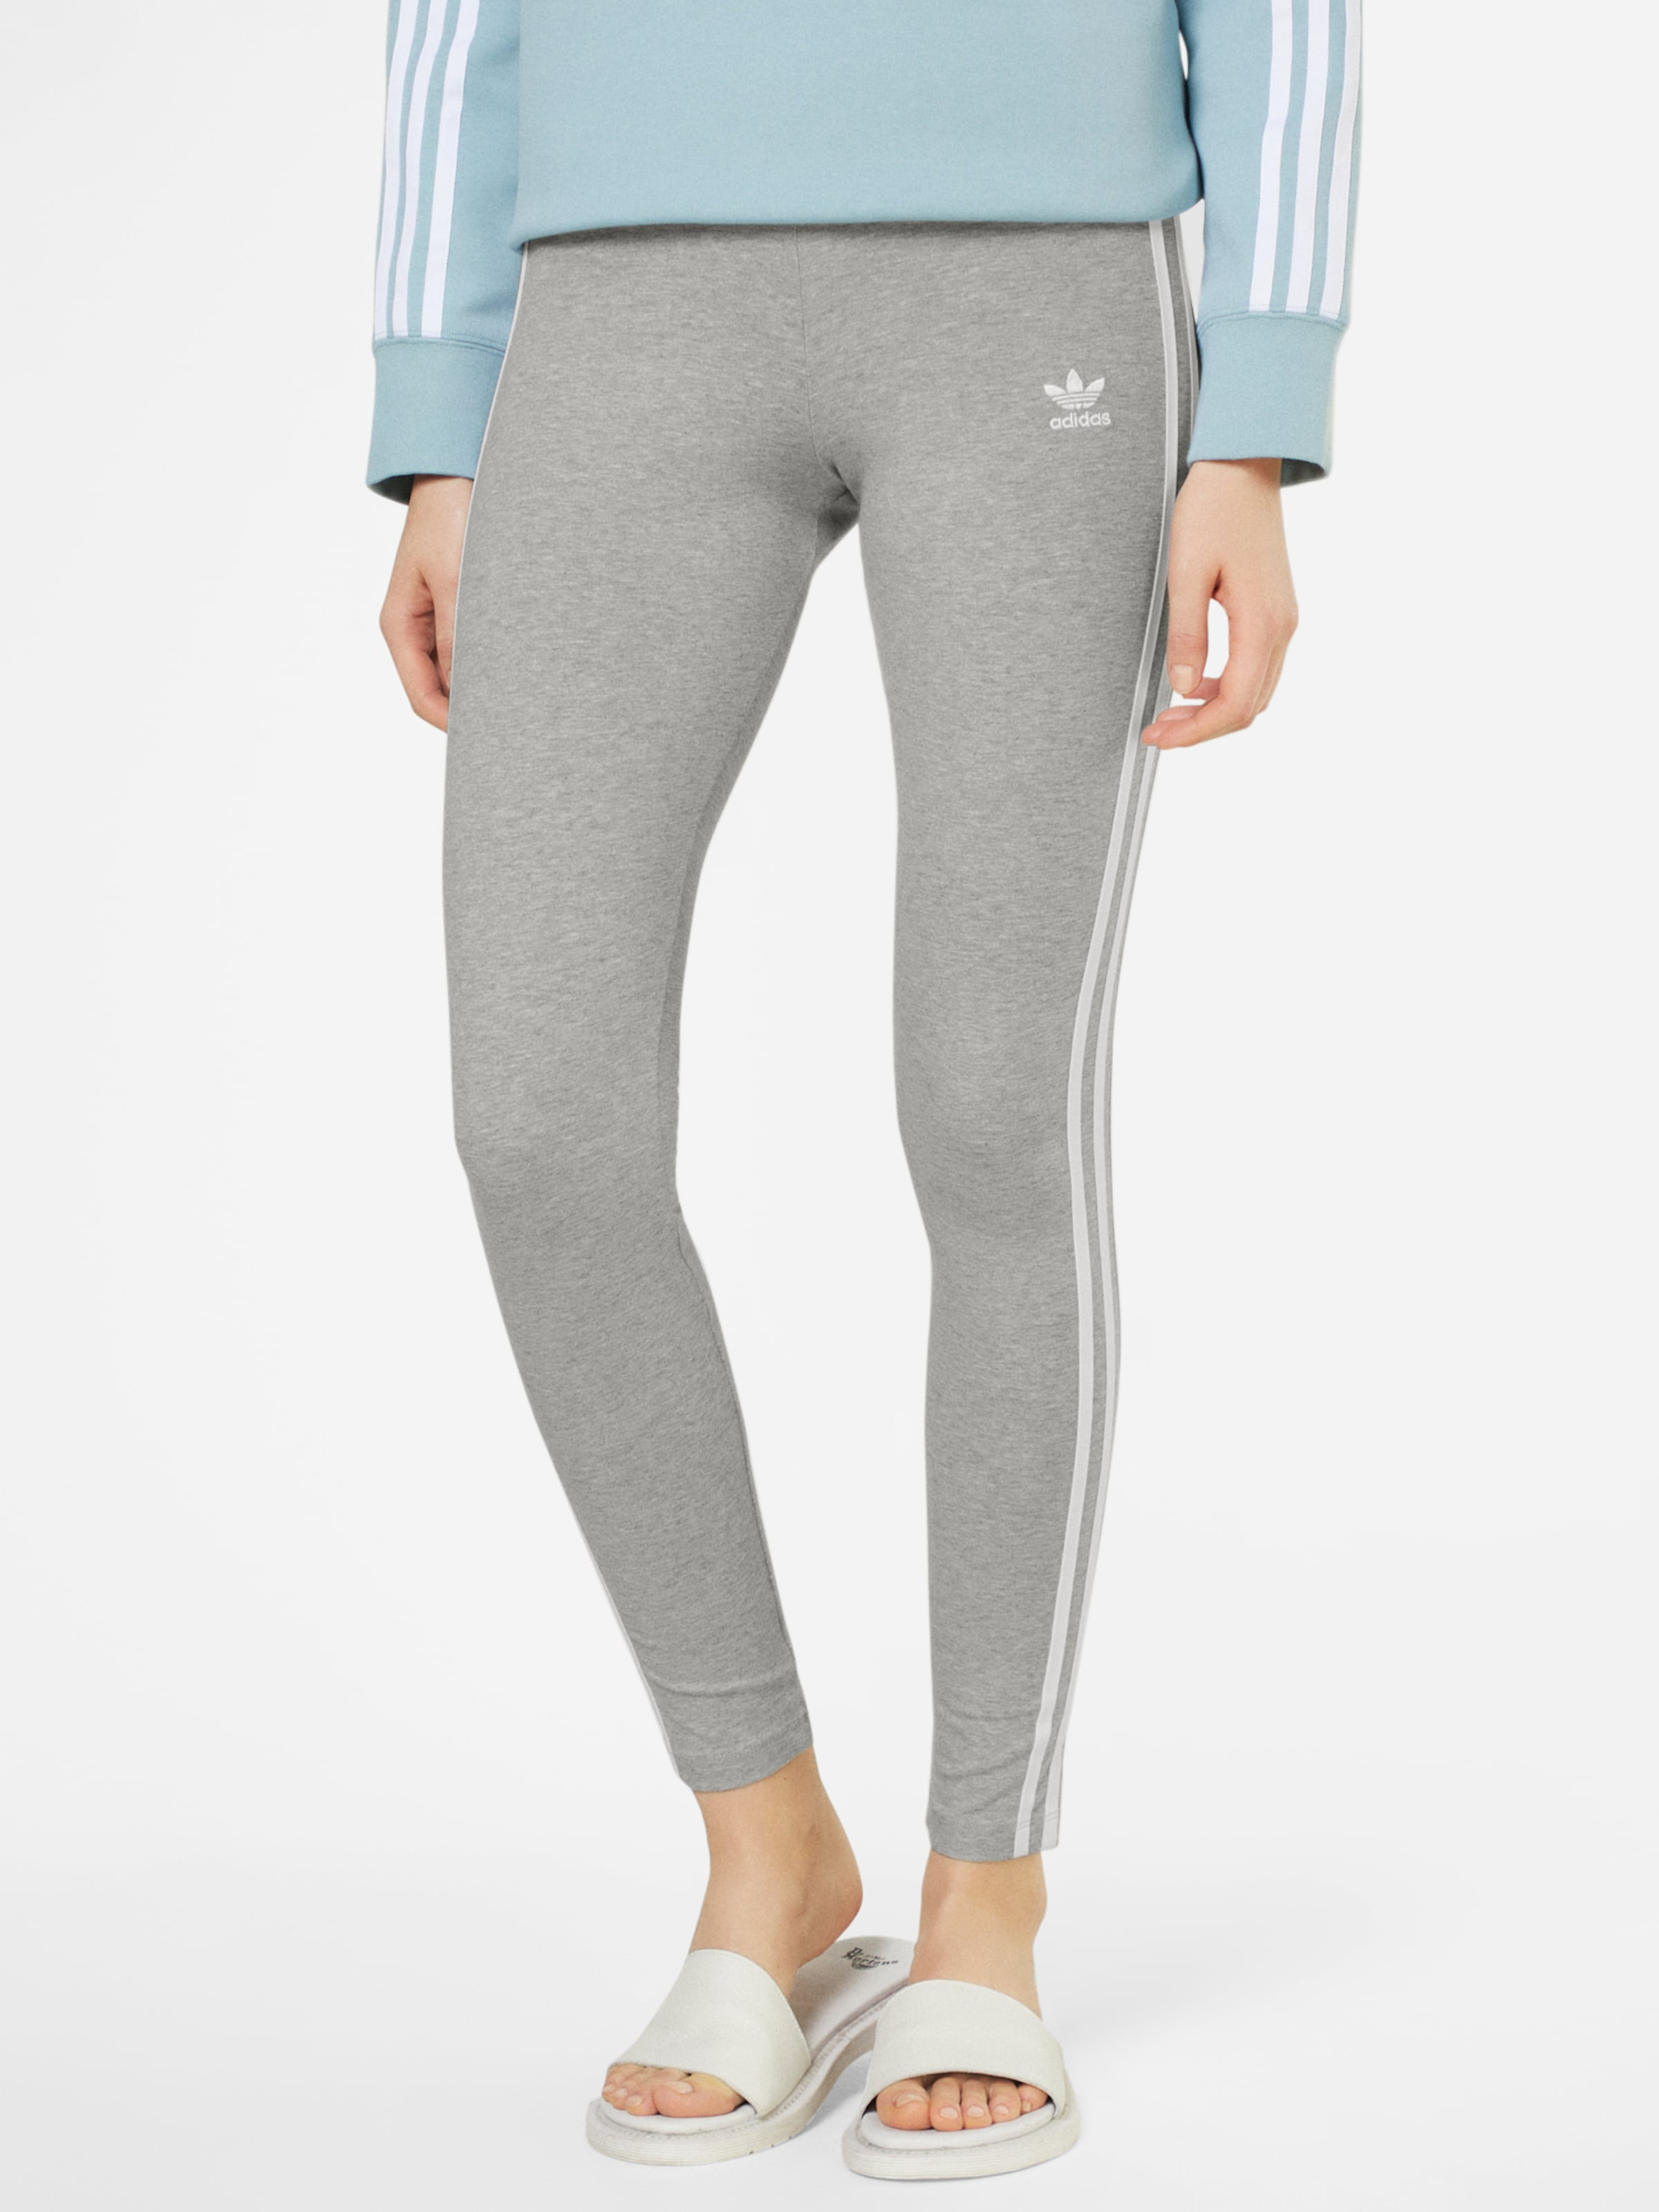 Stripes' En Originals '3 Adidas Leggings Gris ChinéBlanc nwO08Pk